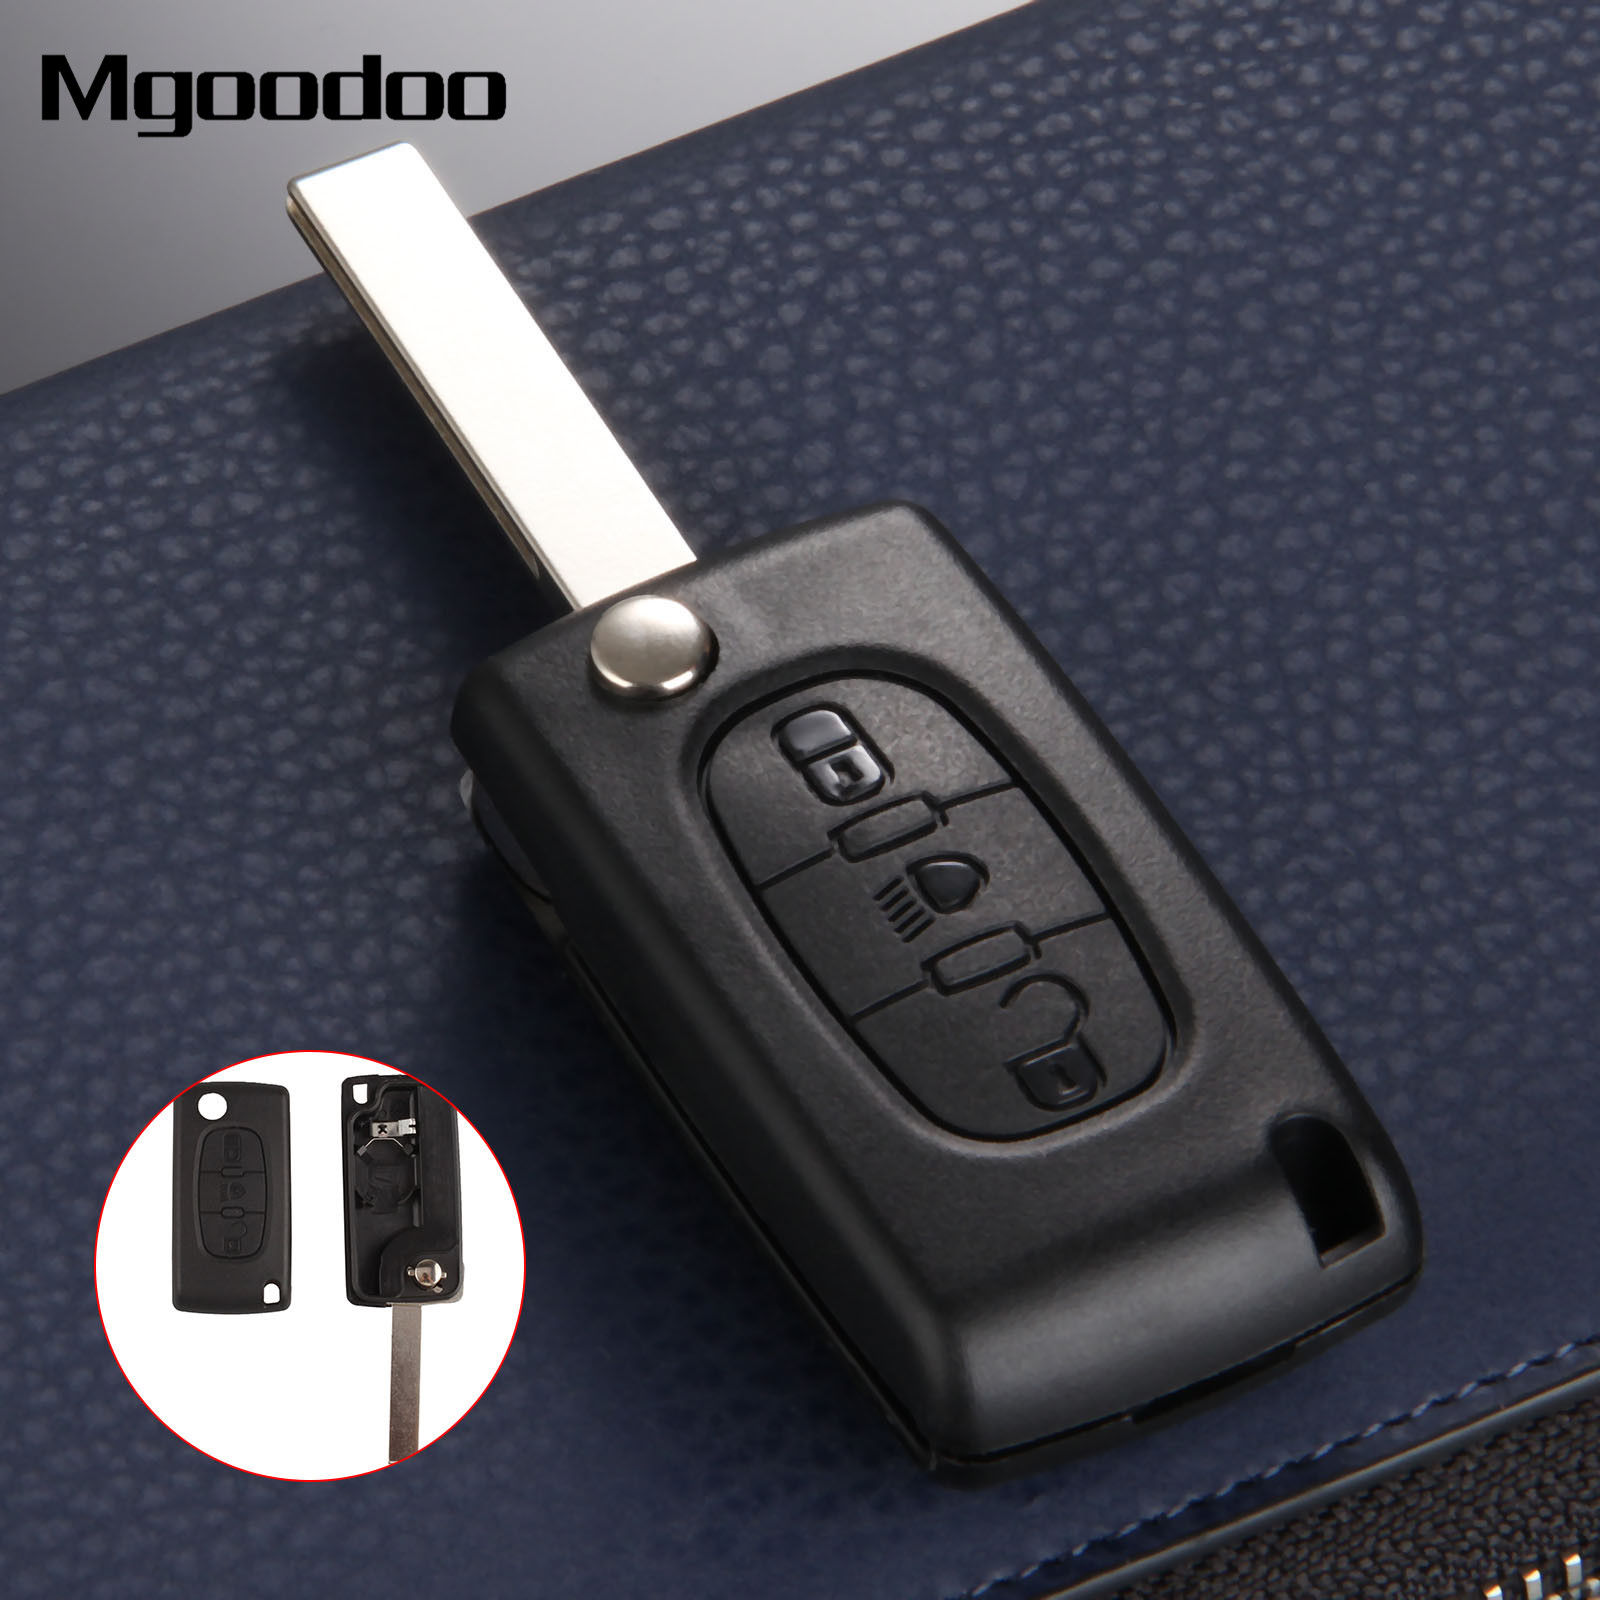 Chequers Motorstore Peugeot 4 Button 1007 Citroen C8 Remote Key Fob VA2 Smooth NON Groove Blade repair